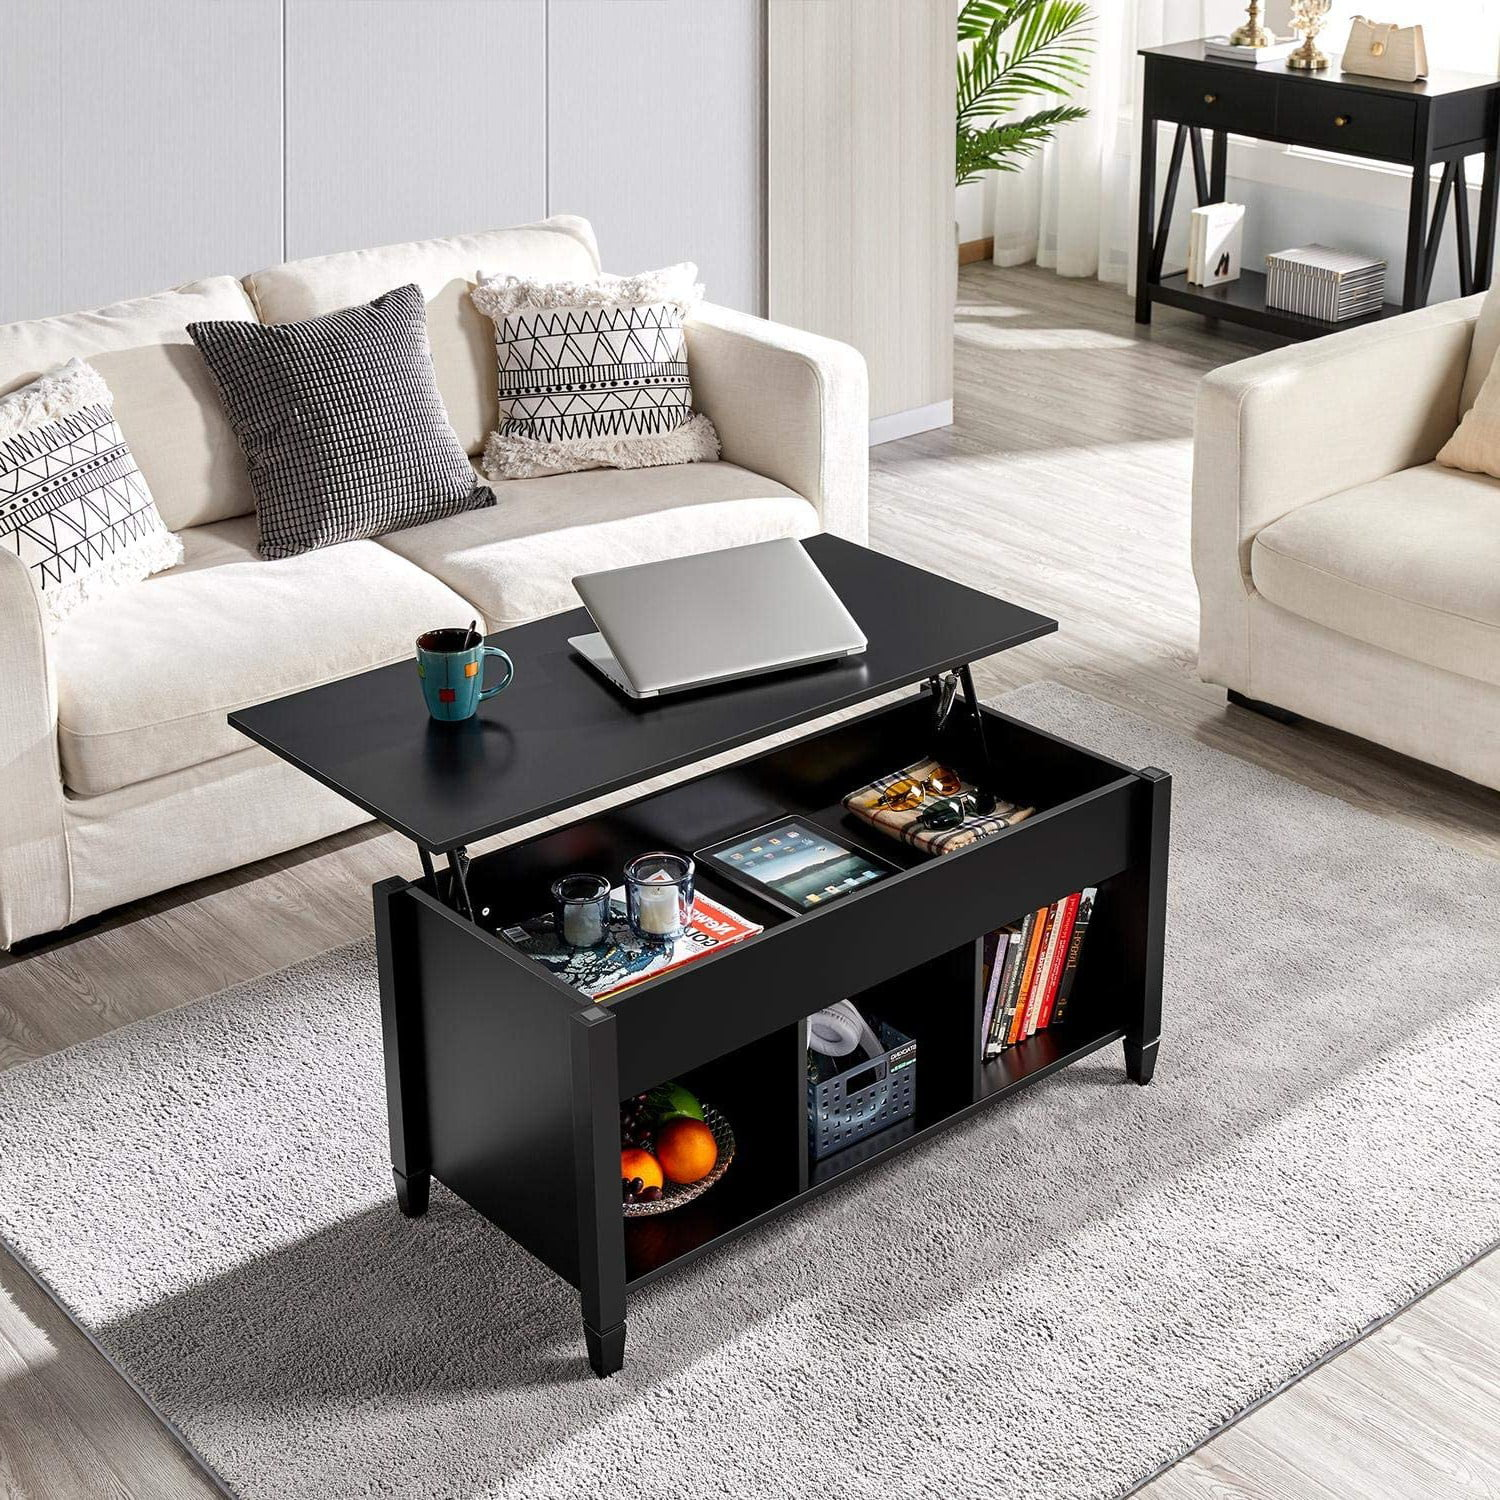 Zimtown Lift Top Coffee Table W Hidden Compartment Wooden Modern Multifunctional Coffee Dining Table Furniture Multi Color Walmart Com Walmart Com [ 1500 x 1500 Pixel ]